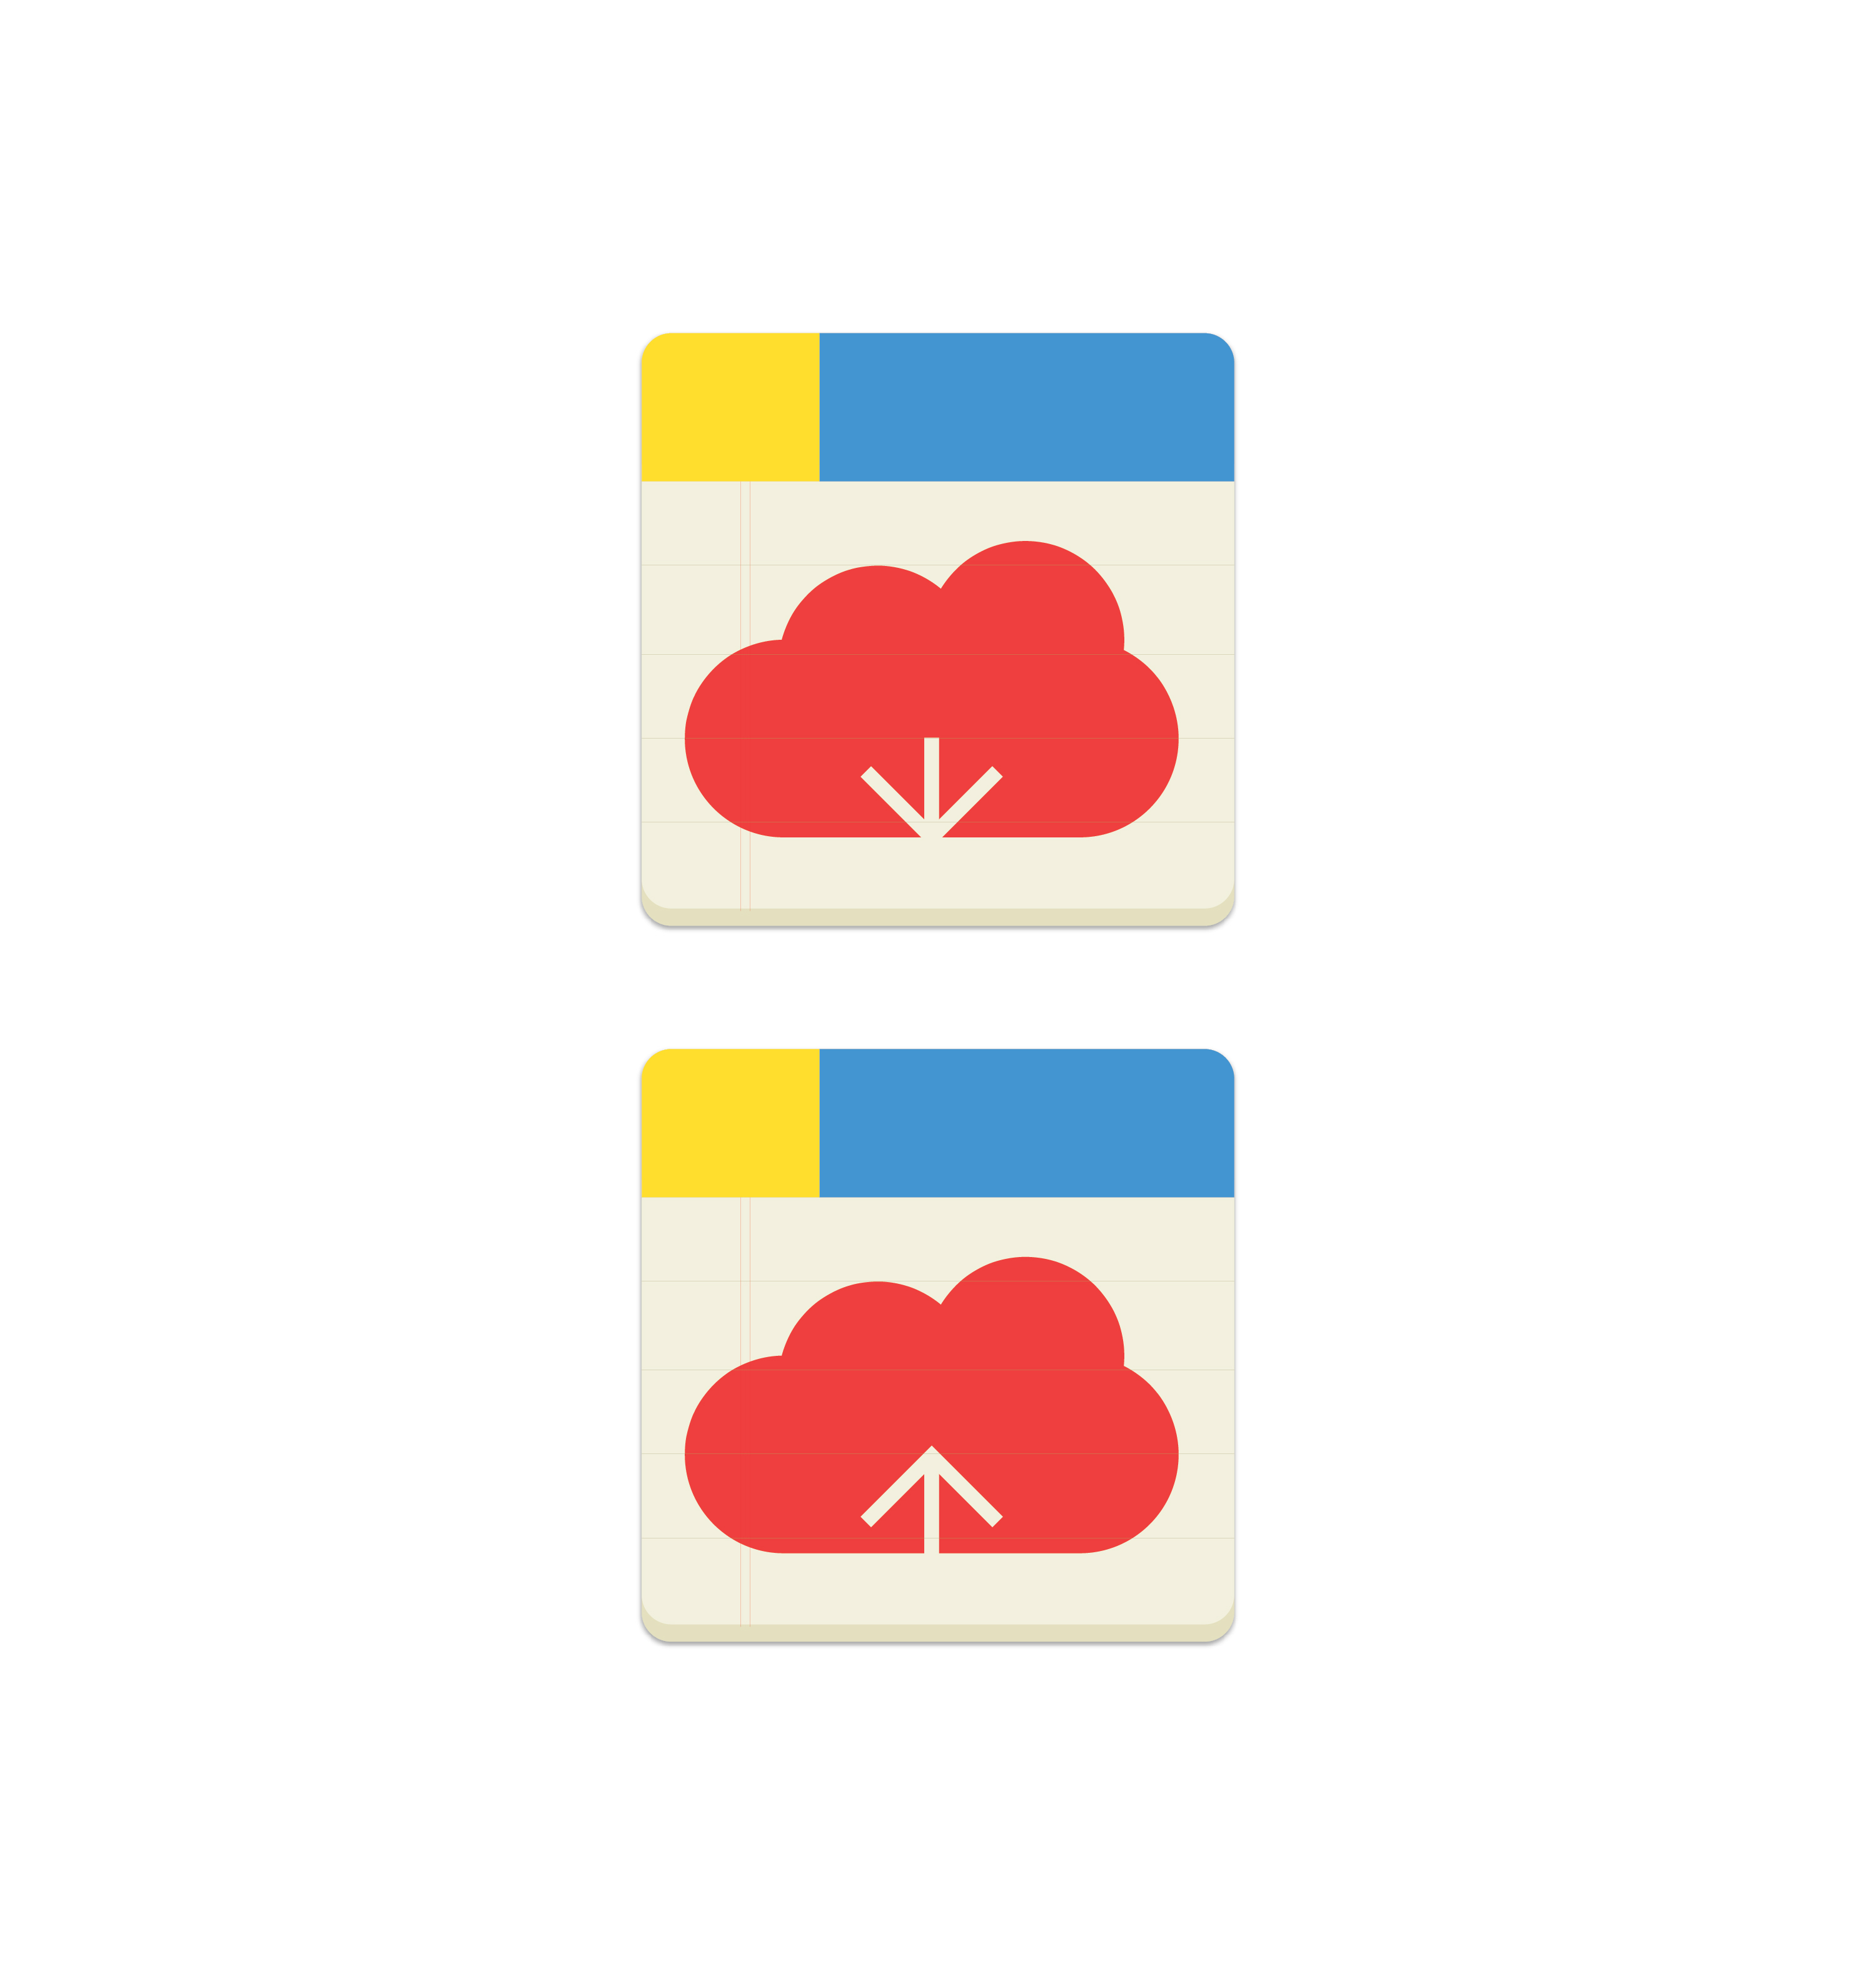 cloud download and upload icon 1